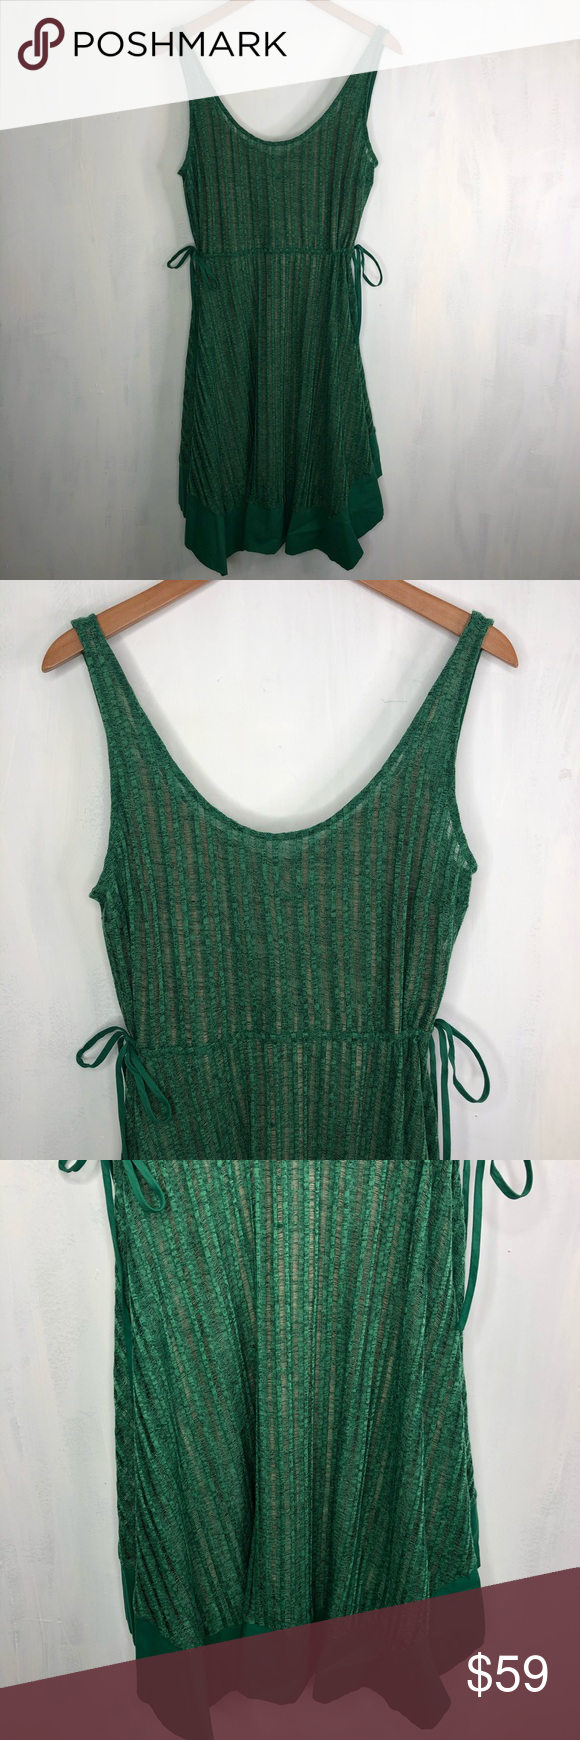 """Tracy Reese x Anthropologie Lino Swing Dress M Tracy Reese x Anthropologie Lino Swing Dress M. Condition: . Color: green. Size: m medium. Measurements are approximate; taken while garment is lying flat: 19"""" across chest, 13"""" across waist, 39"""" length (at longer points) Additional features: ties at waist, fully lined, flutter asymmetrical handkerchief hem. Offers welcomed, trade requests are not. Inventory #0137 Anthropologie Dresses"""